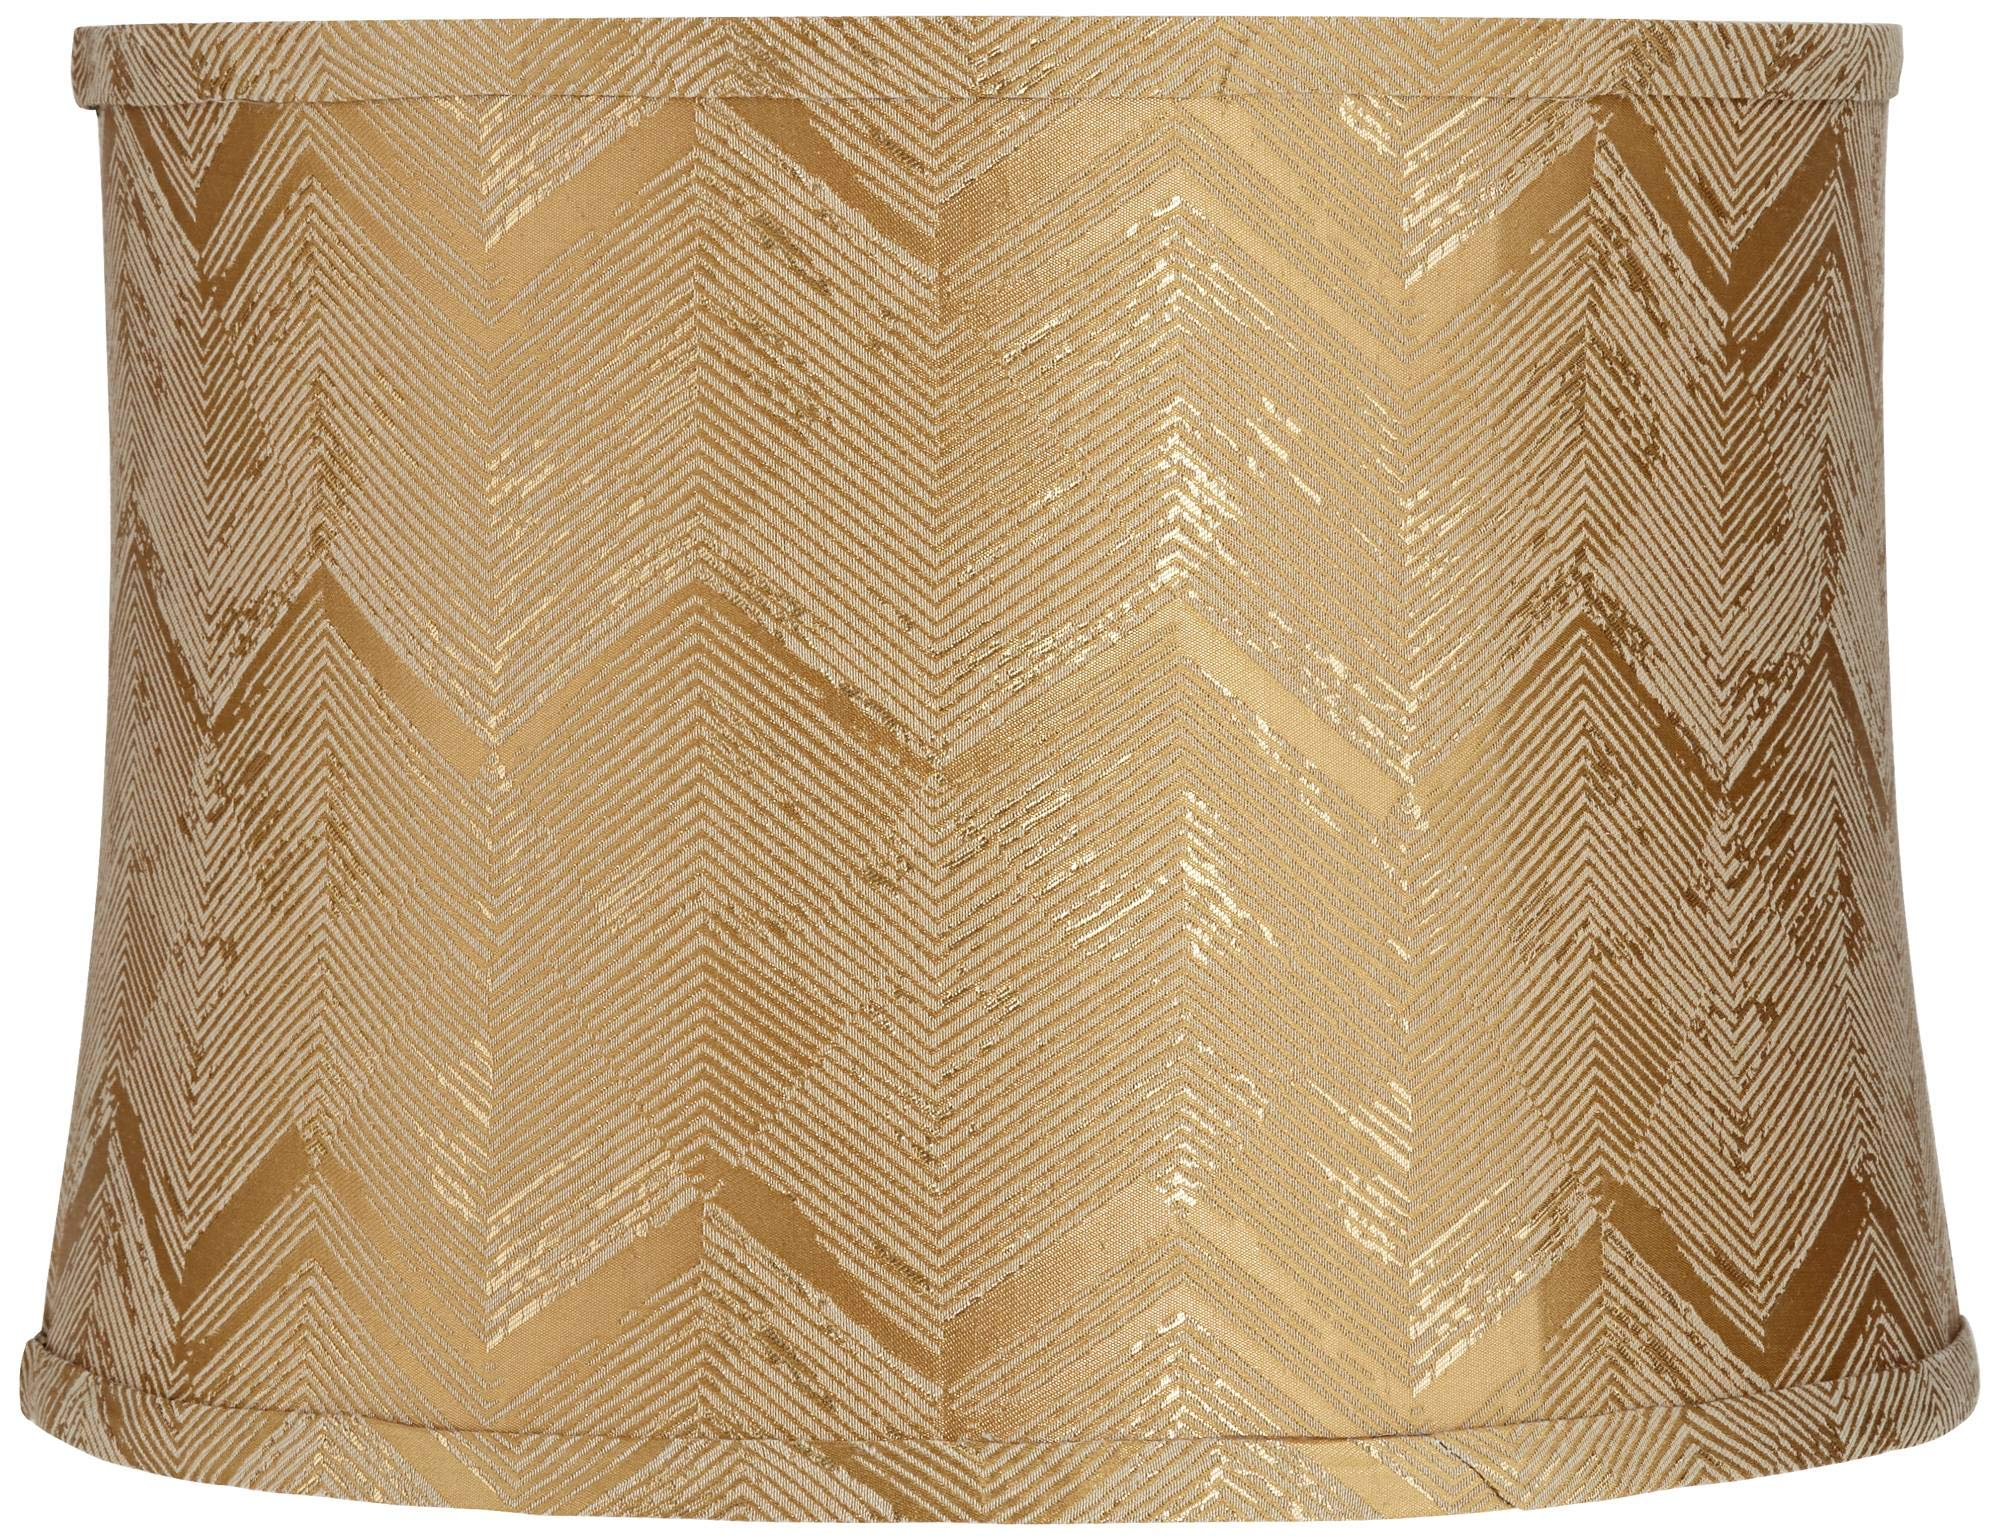 Gold Banqiao Fabric Drum Lamp Shade 13x14x10 (Spider) - Springcrest